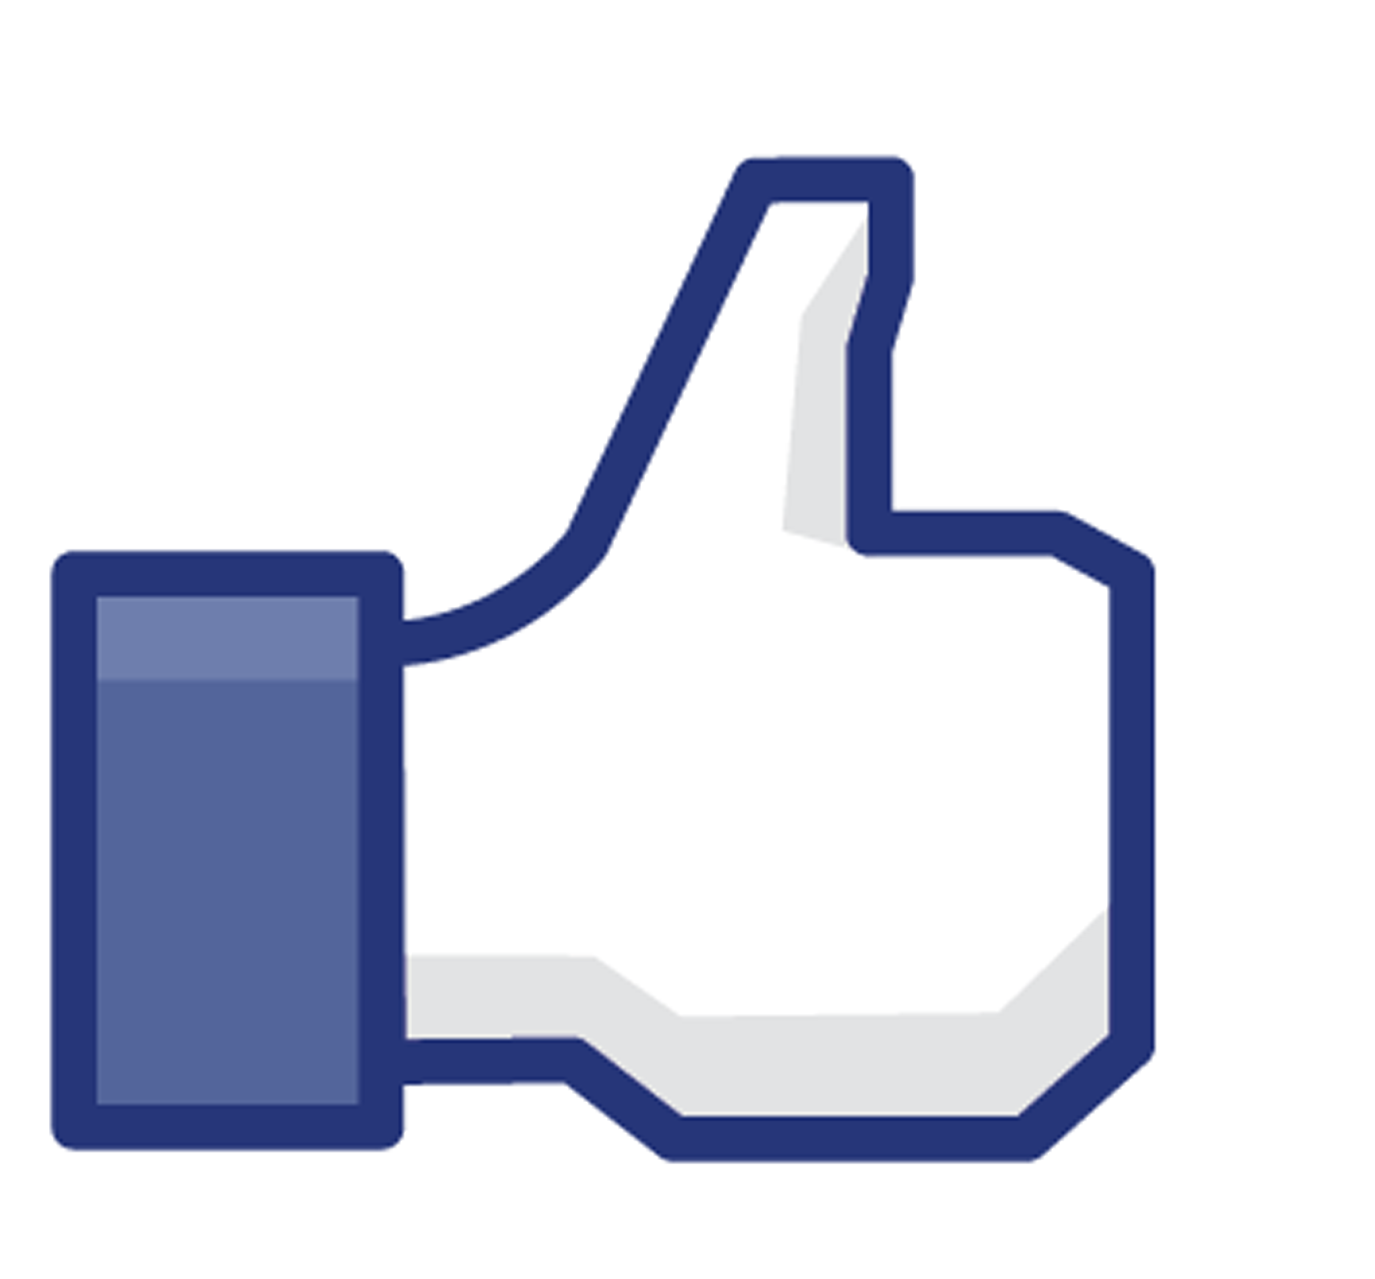 amortgagenow facebook page - like us to win